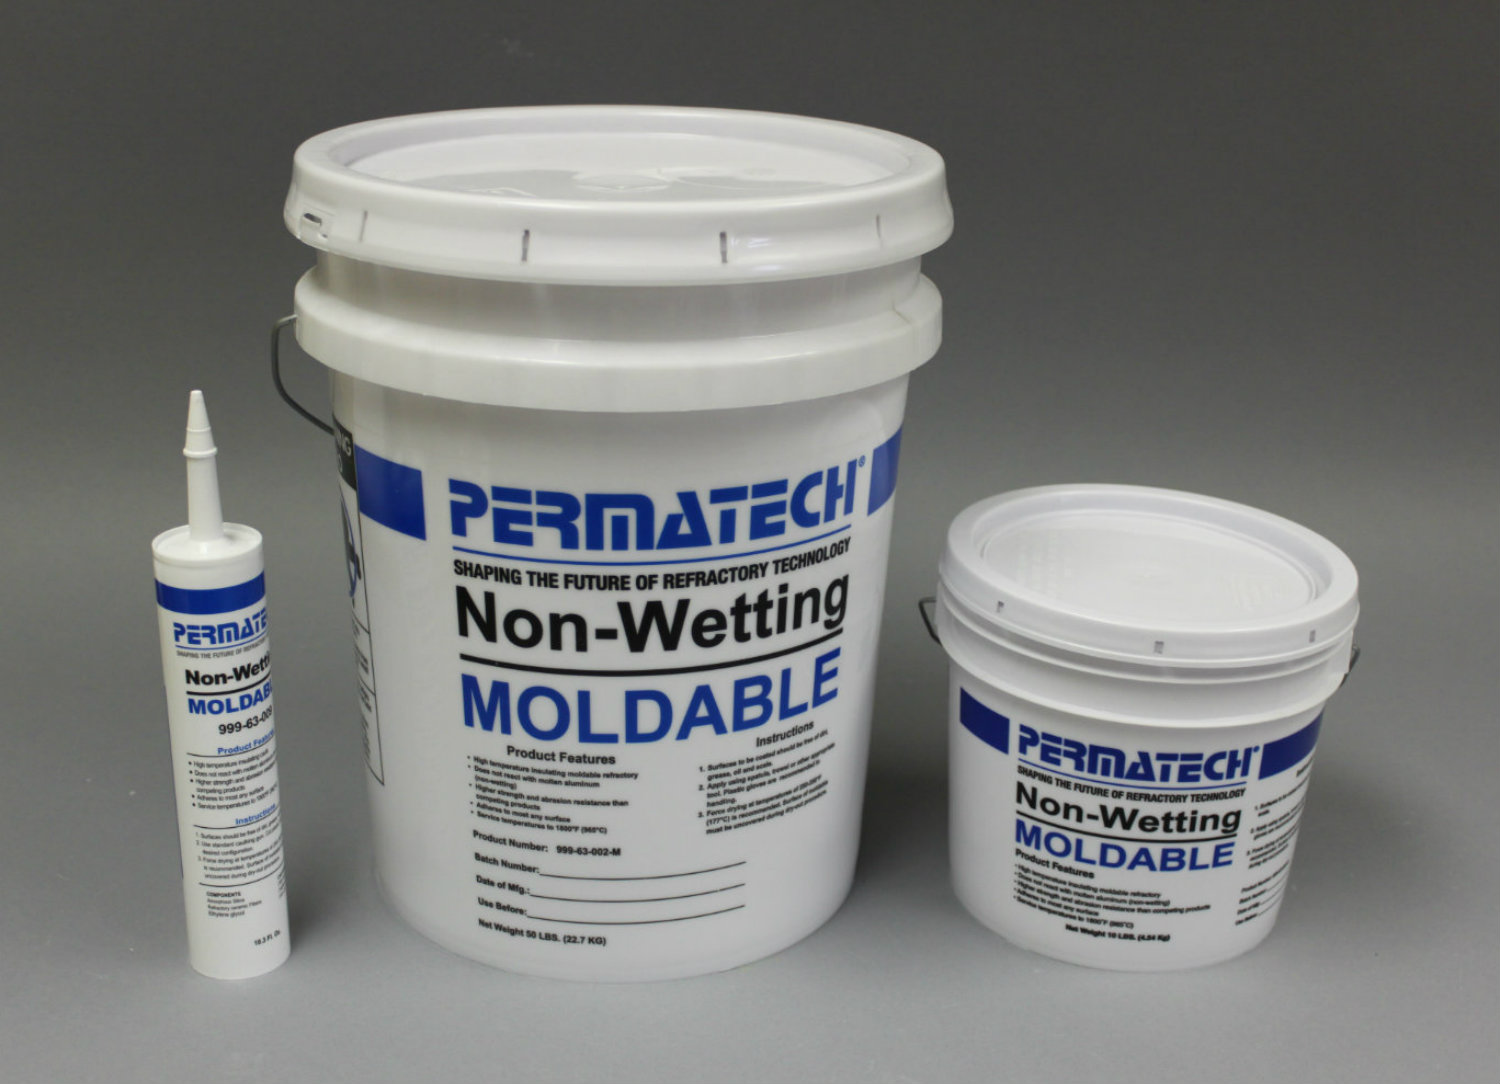 Moldable and Other Products